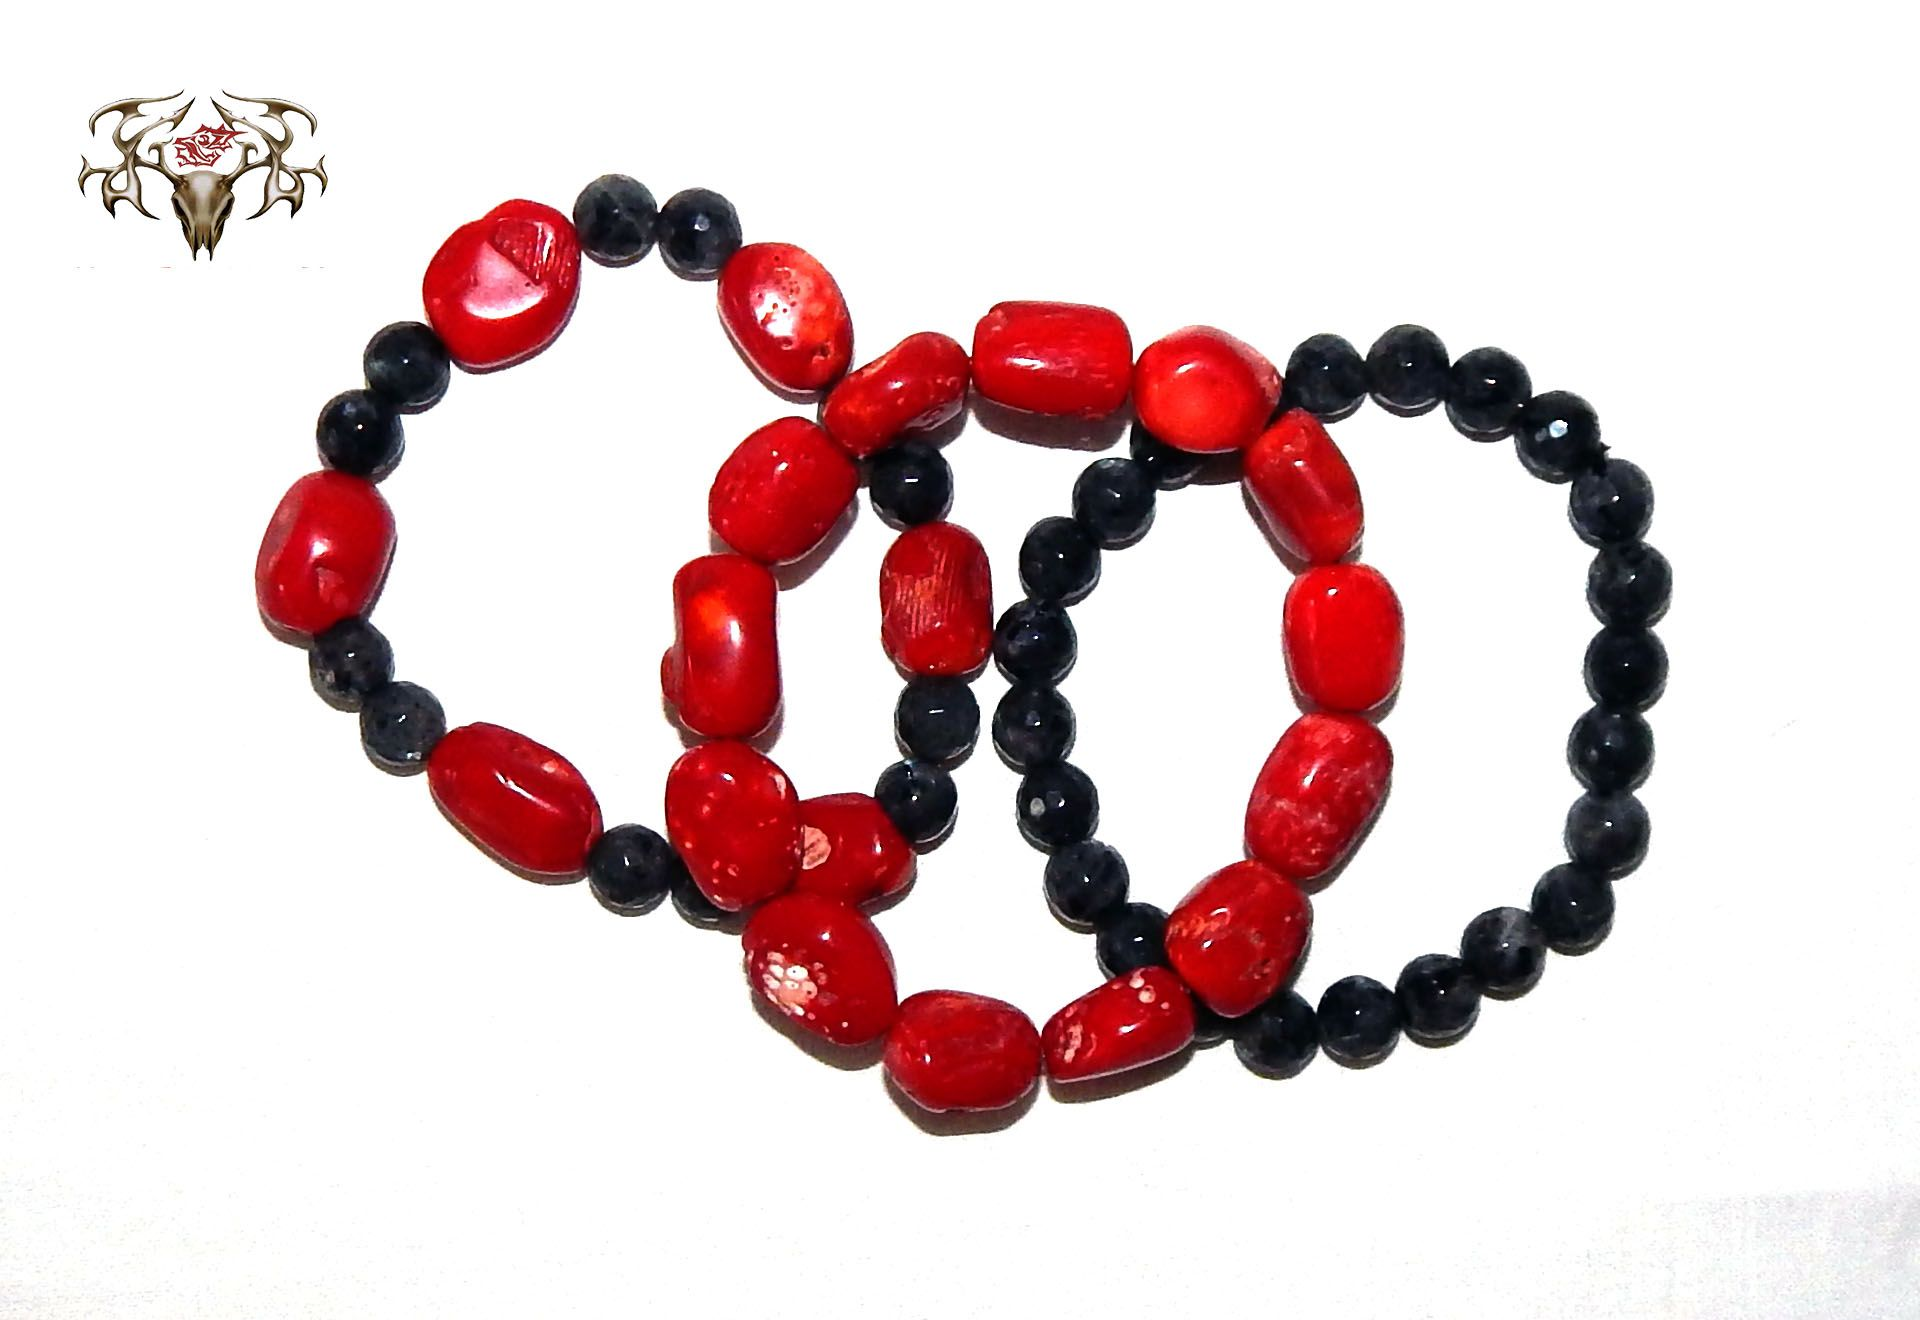 This is our Red Corral & Onyx Bracelet set we handmade with all natural red corral and 8mm onyx. We hand make and sell unique costume jewelry, pearl jewelry and all natural stone jewelry at wholesale prices at www.twistedthingamajigs.com